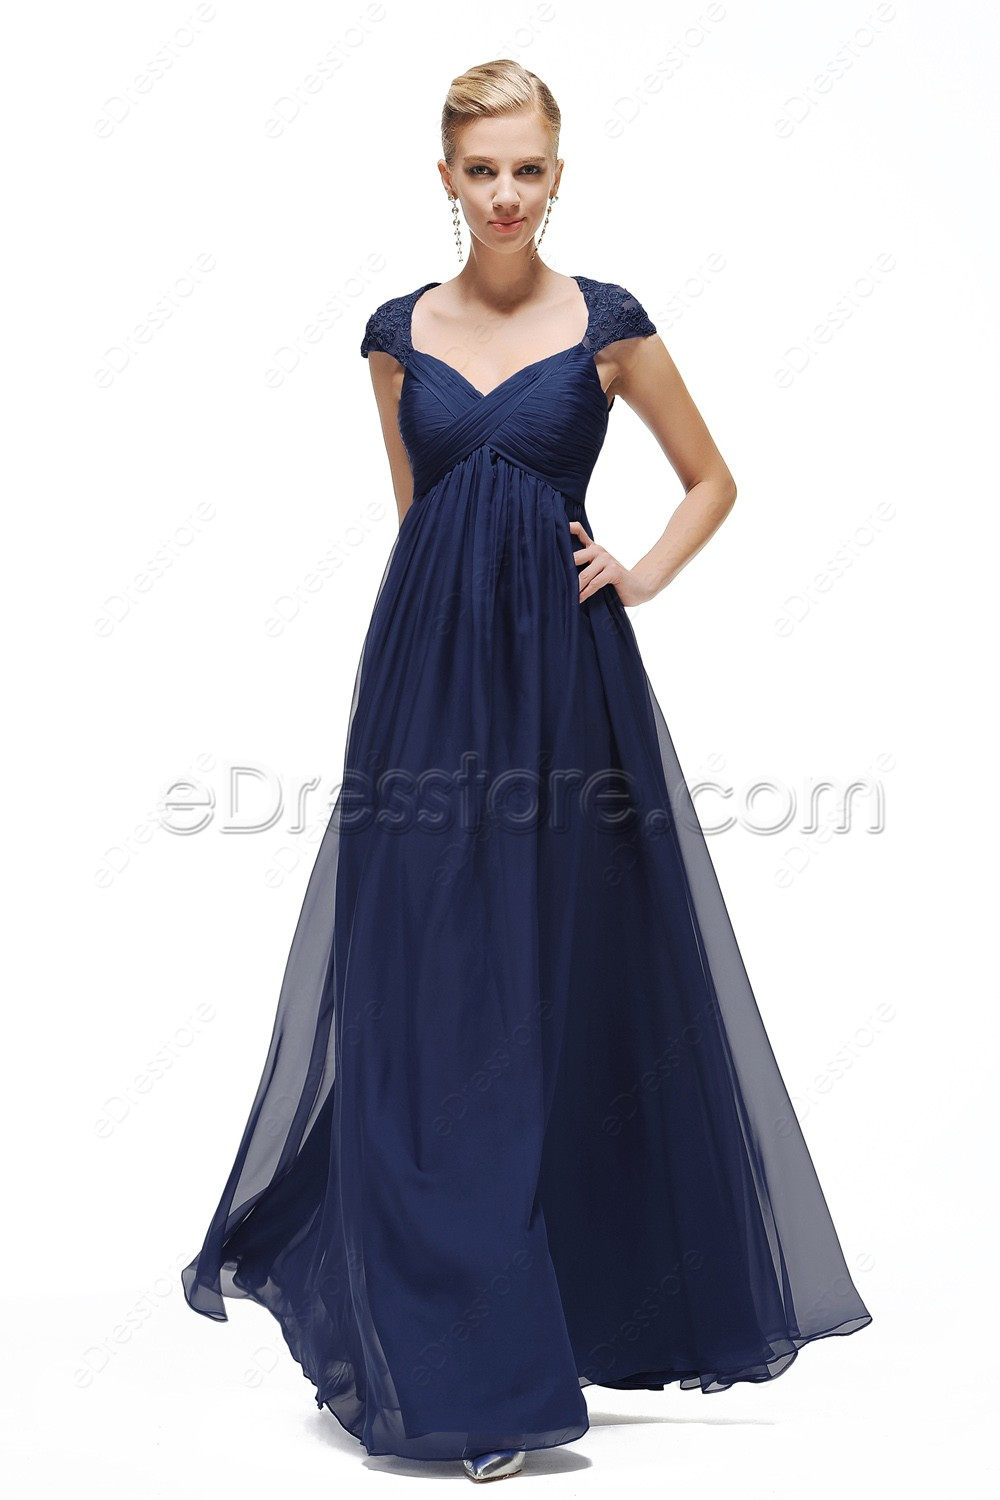 Navy blue maternity formal dresses pregnant wedding guest for Wedding guest pregnancy dresses